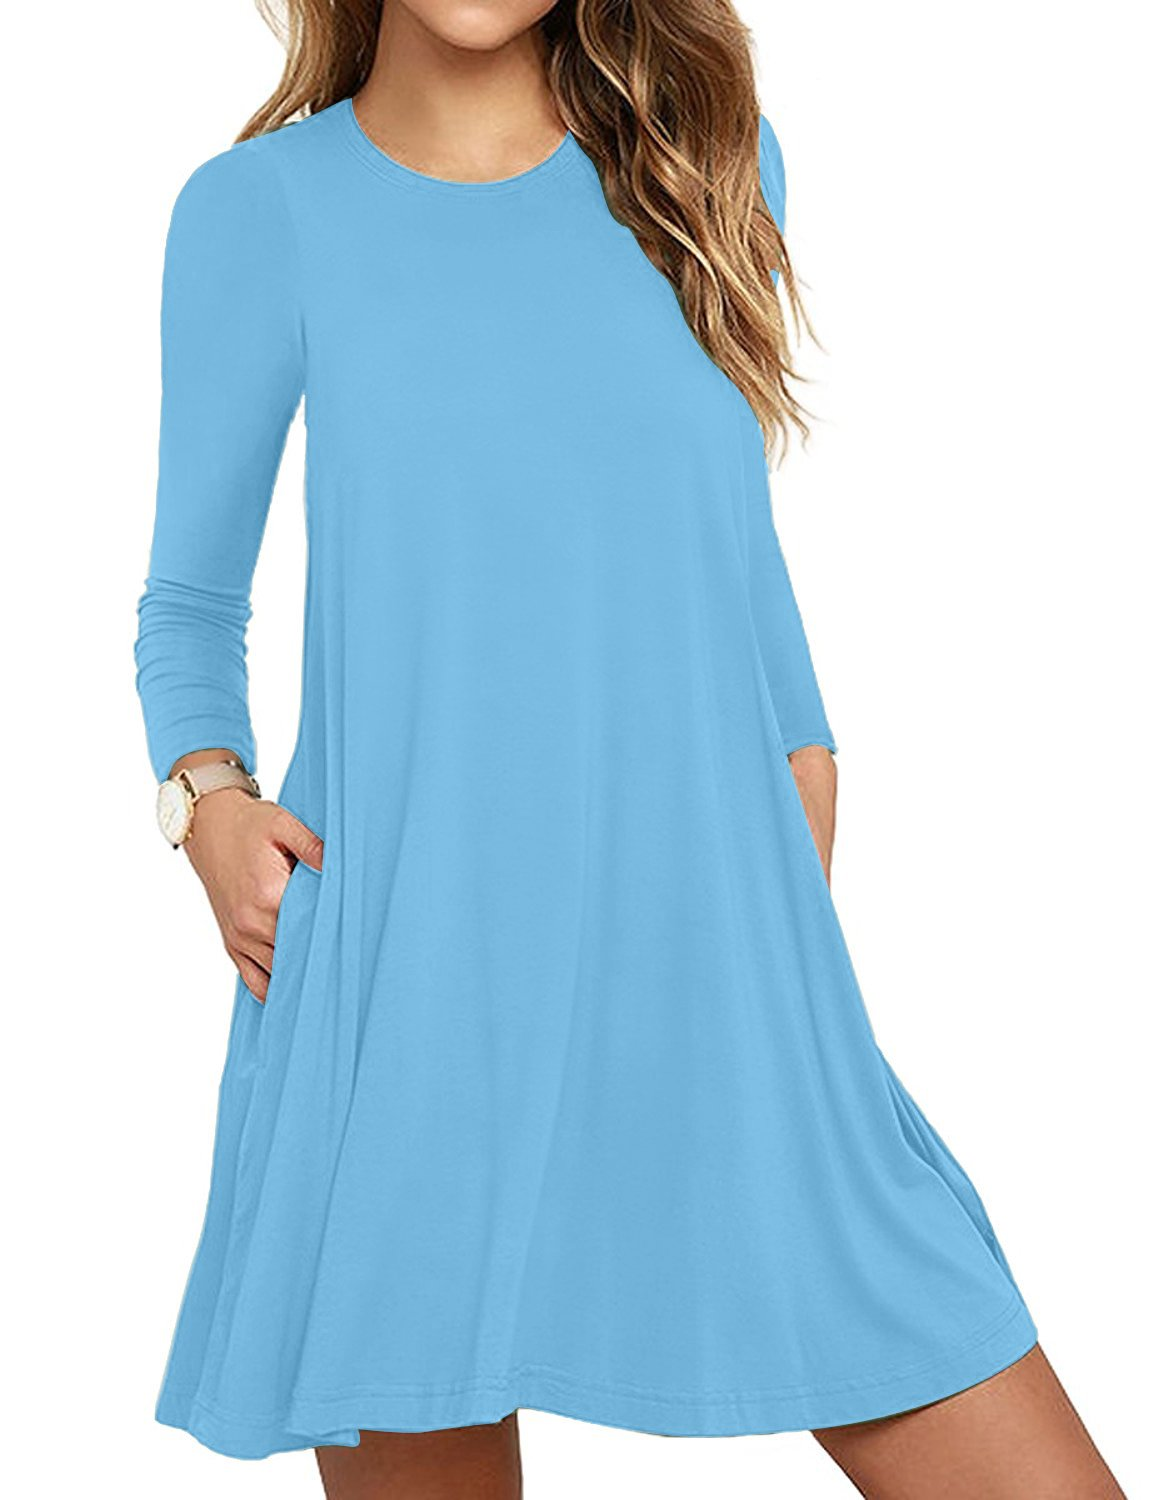 Available at Amazon: HAOMEILI Women's Long Sleeve Pockets Casual Loose T-Shirt Dresses